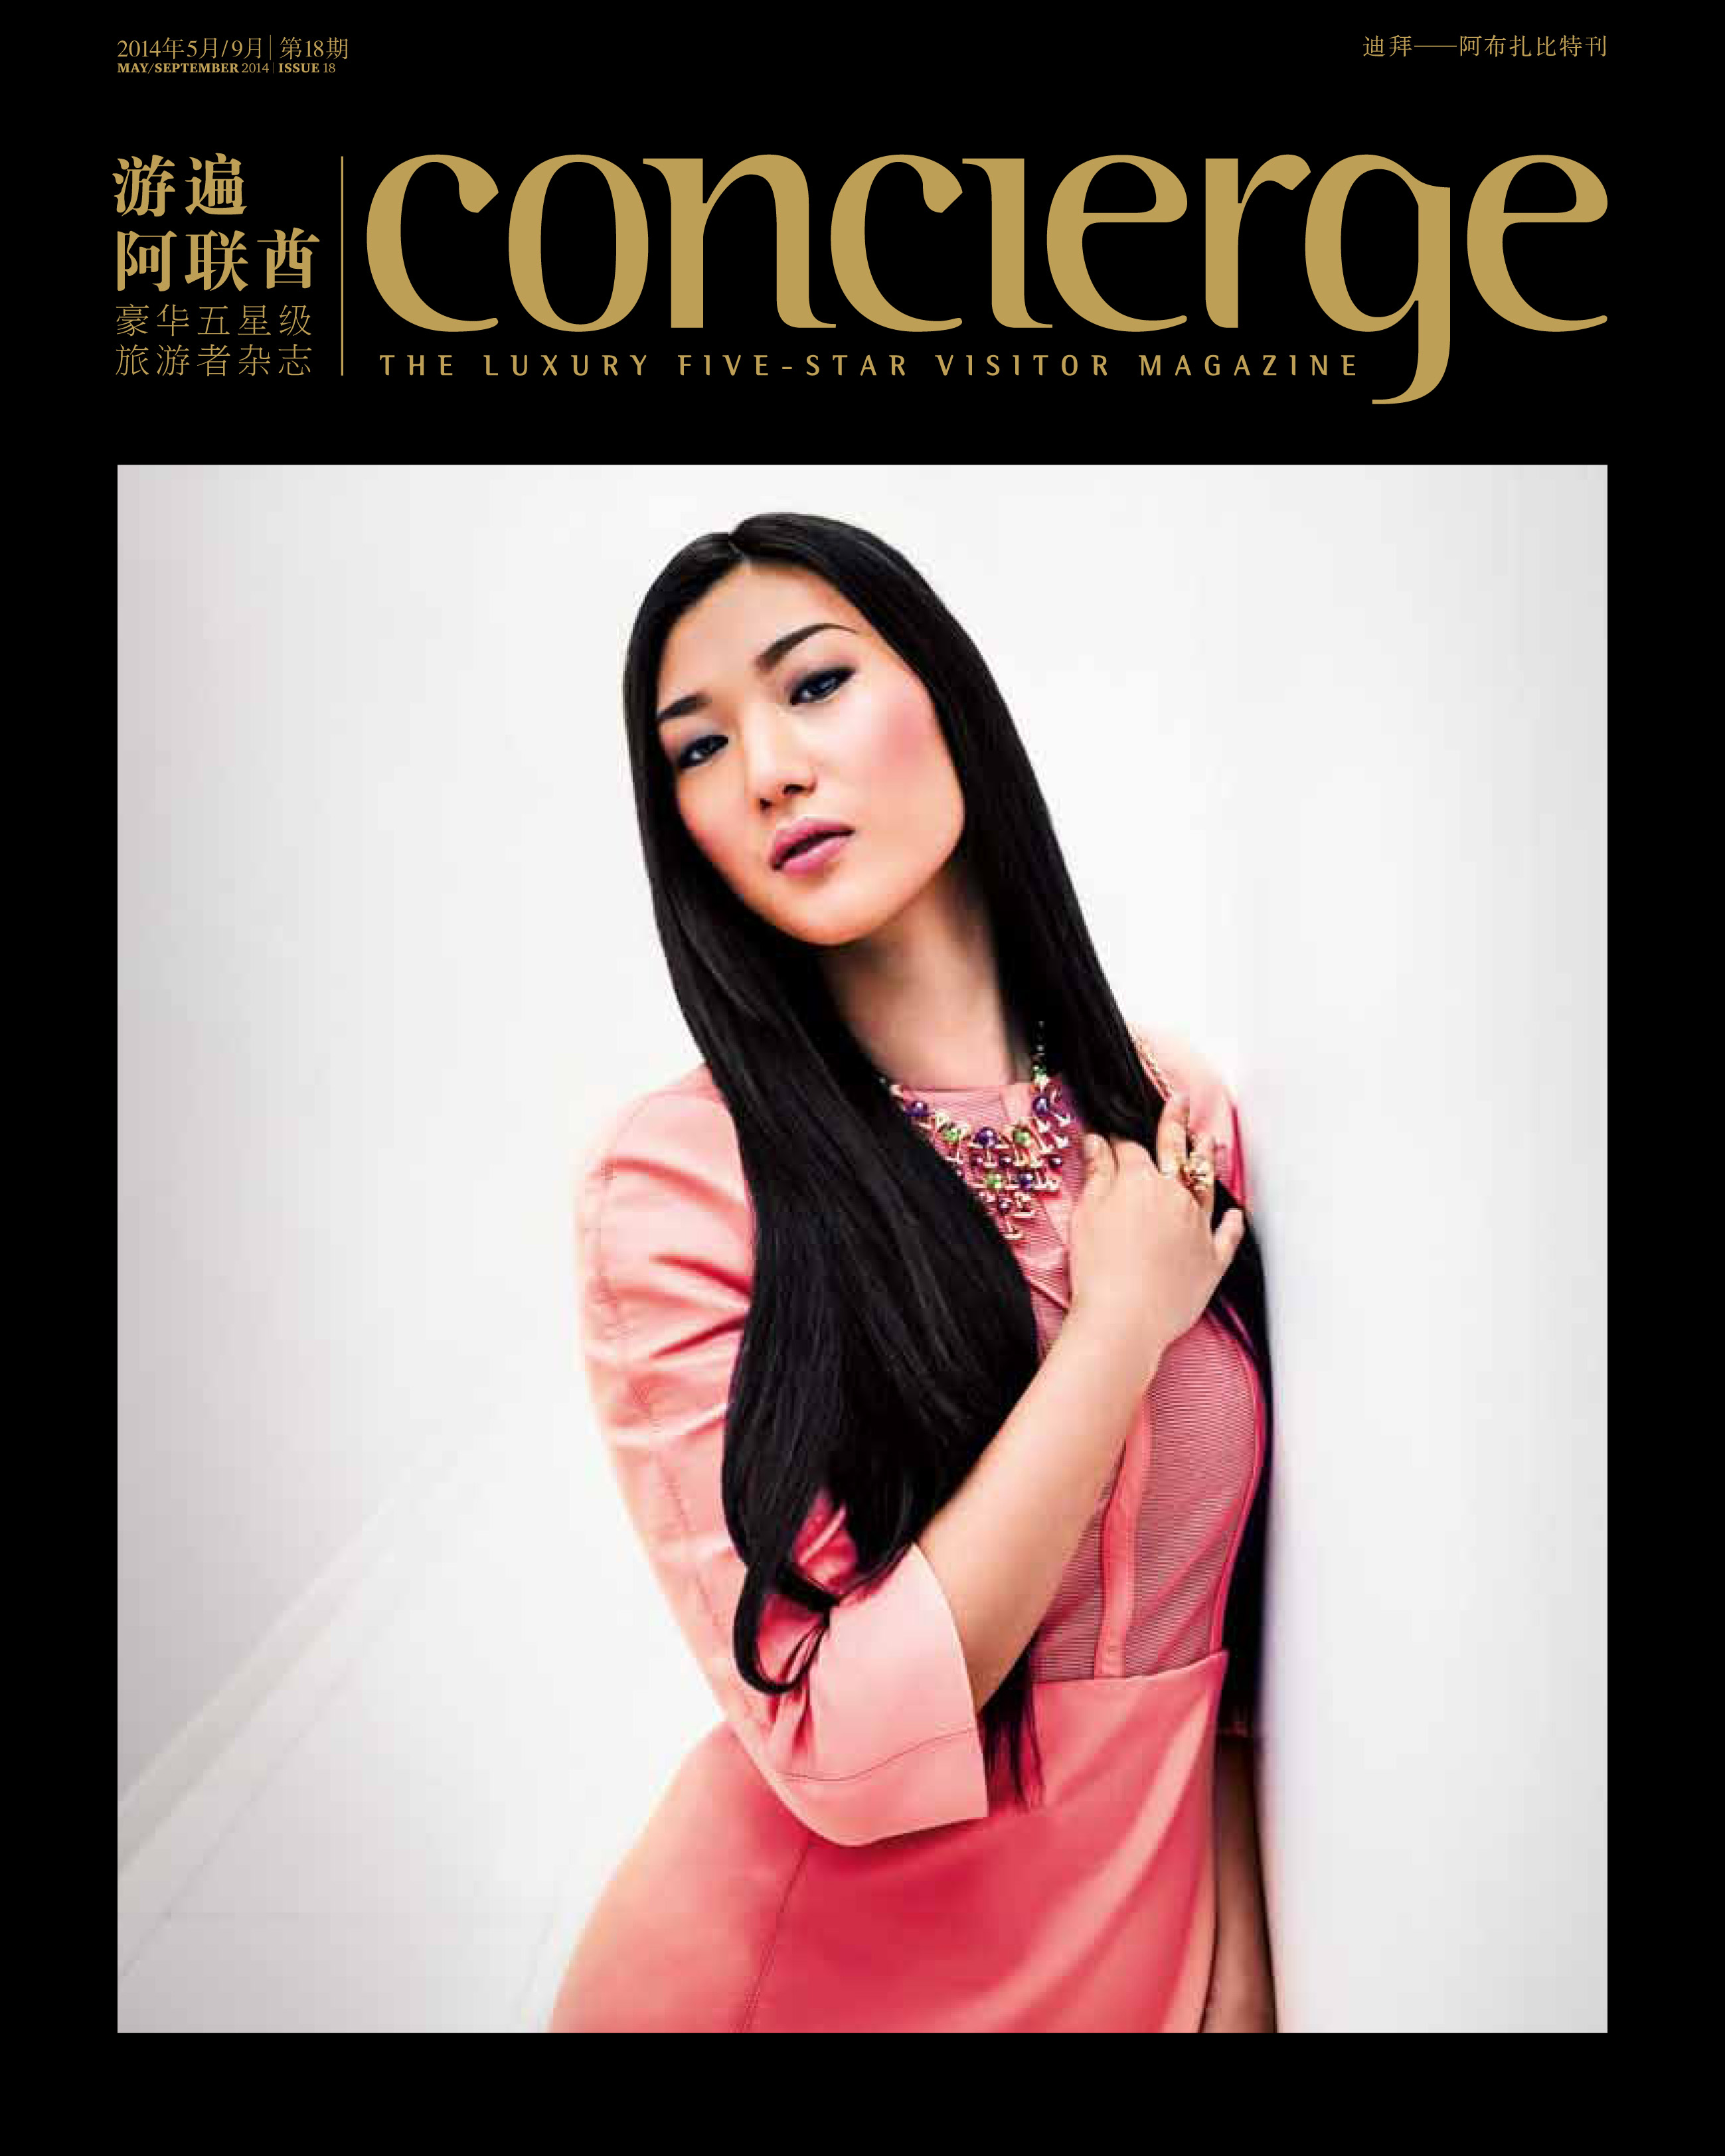 FLC Models & Talents - Catalogue Shoots - Concierge magazine - Liyo